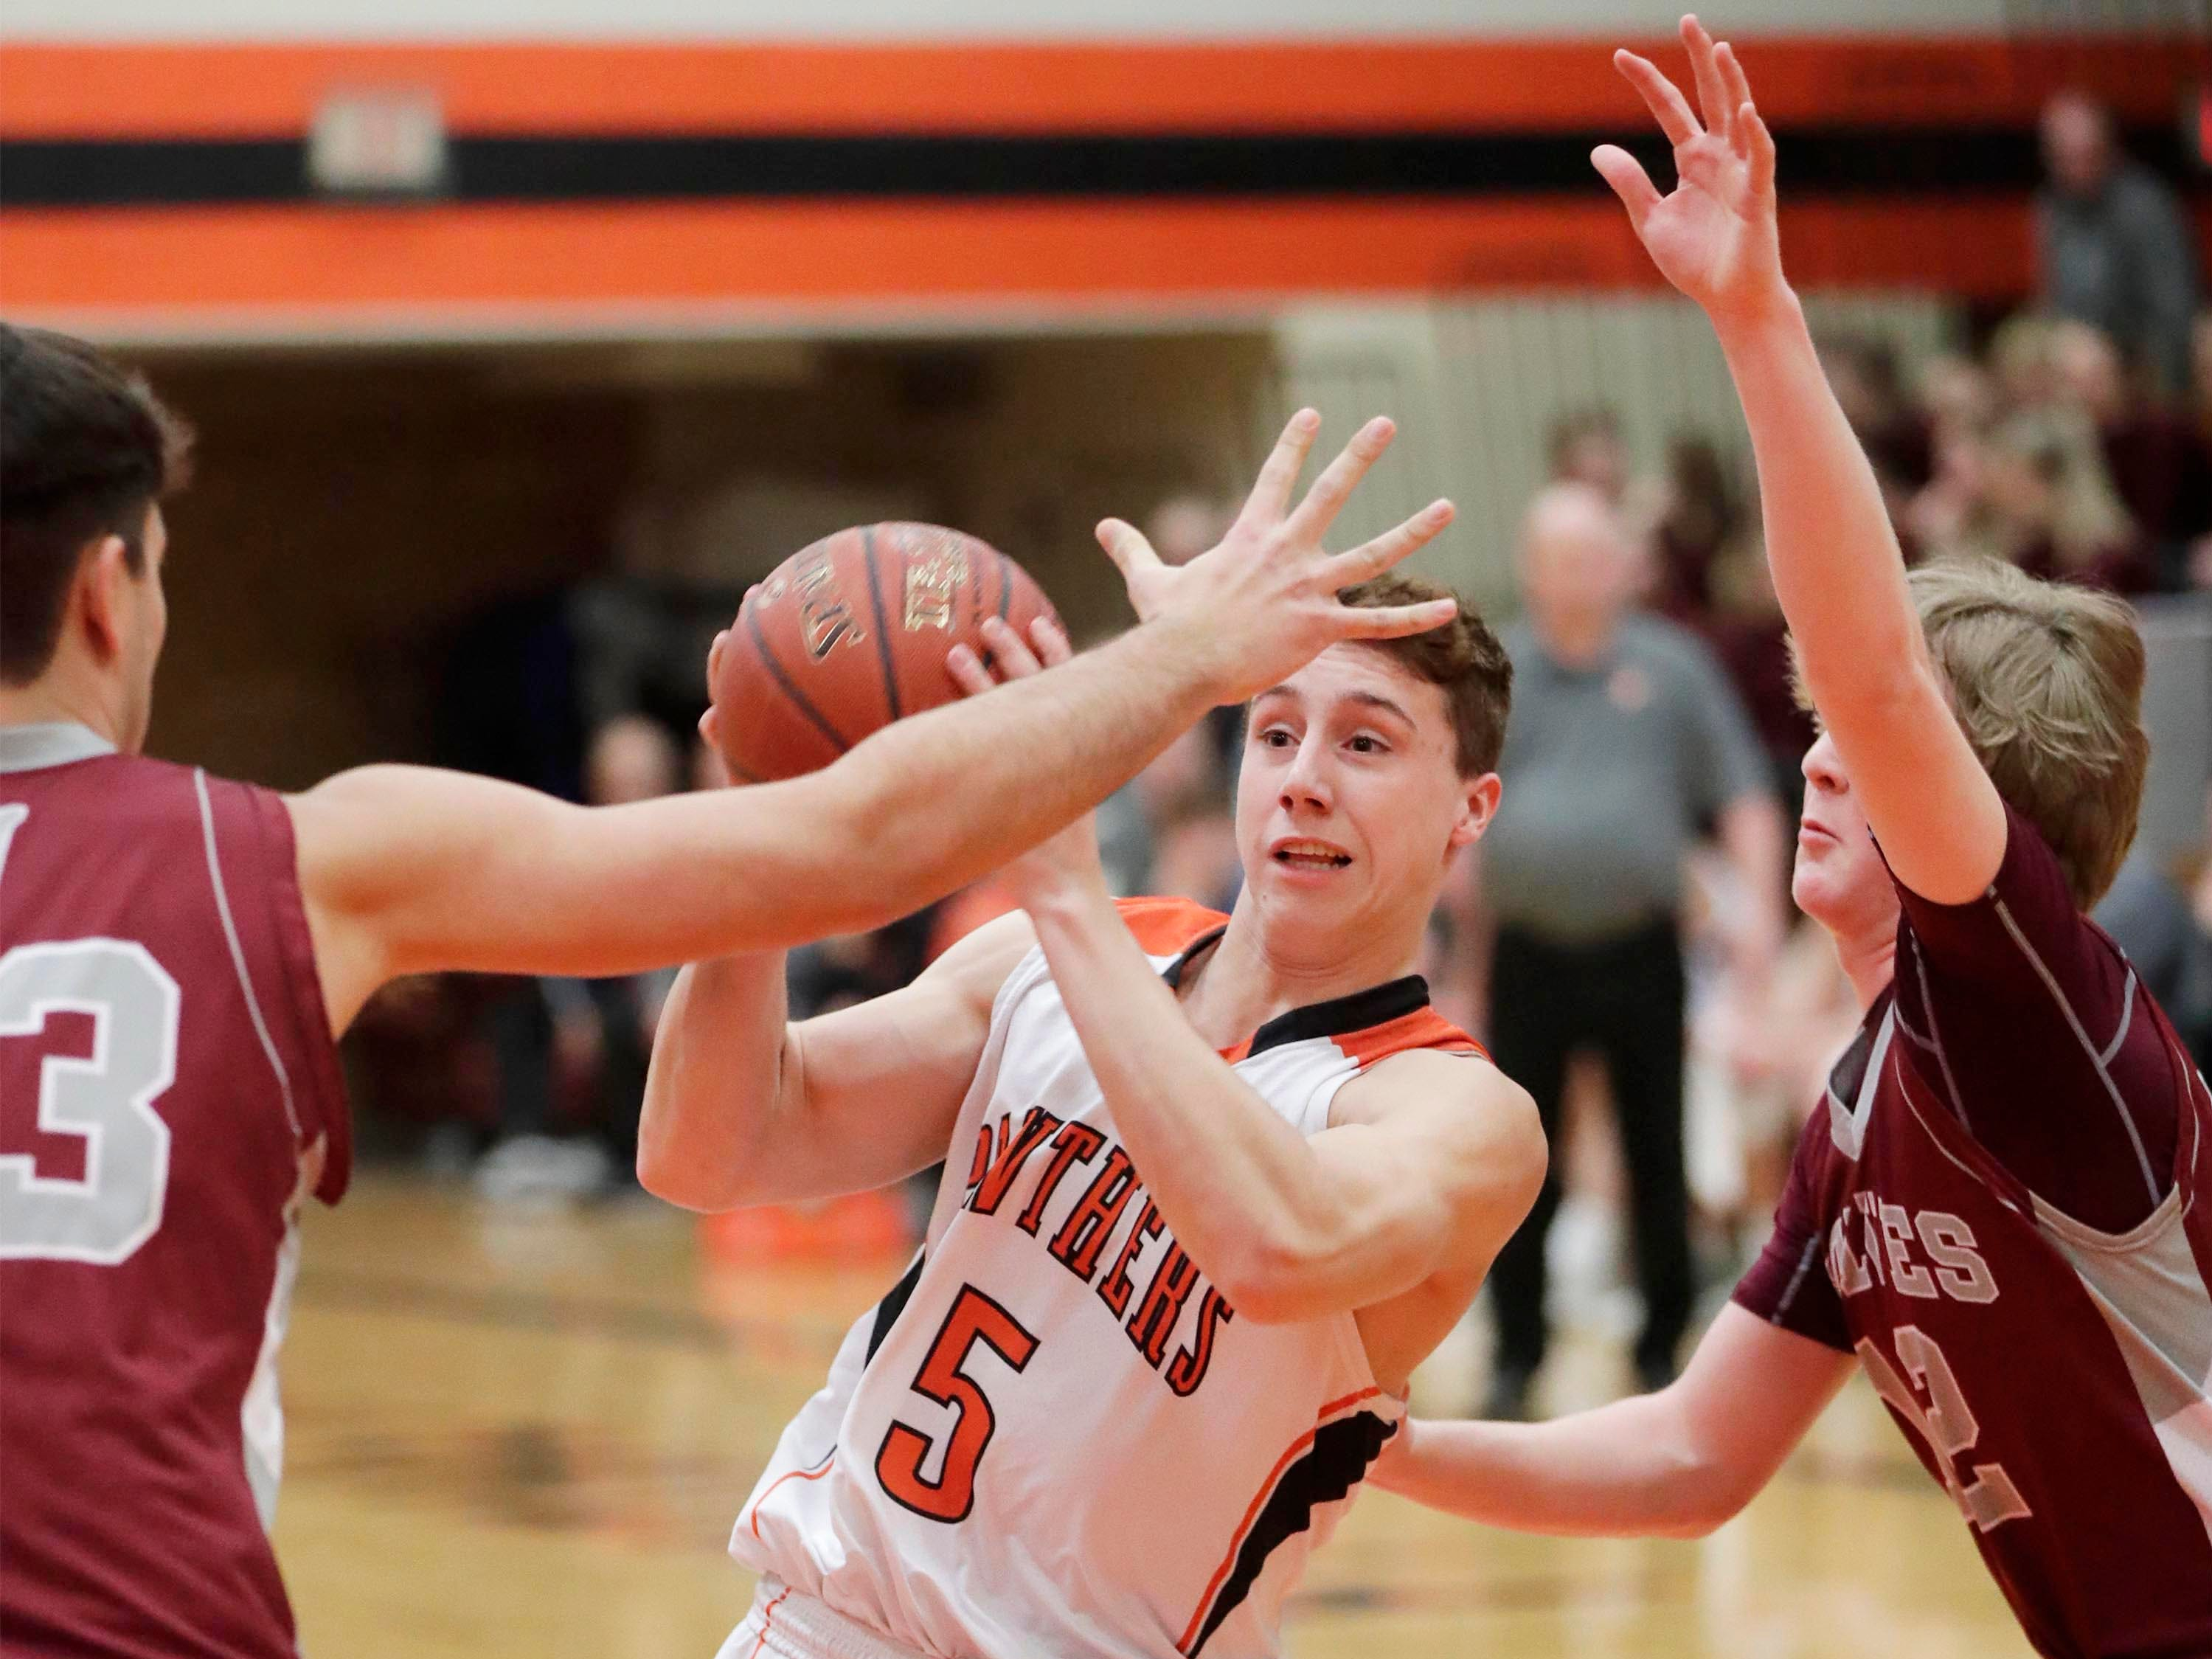 Plymouth's Sam Shutter (5) looks to pass the ball against Winneconne, Wednesday, February 21, 2019, in Plymouth, Wis.